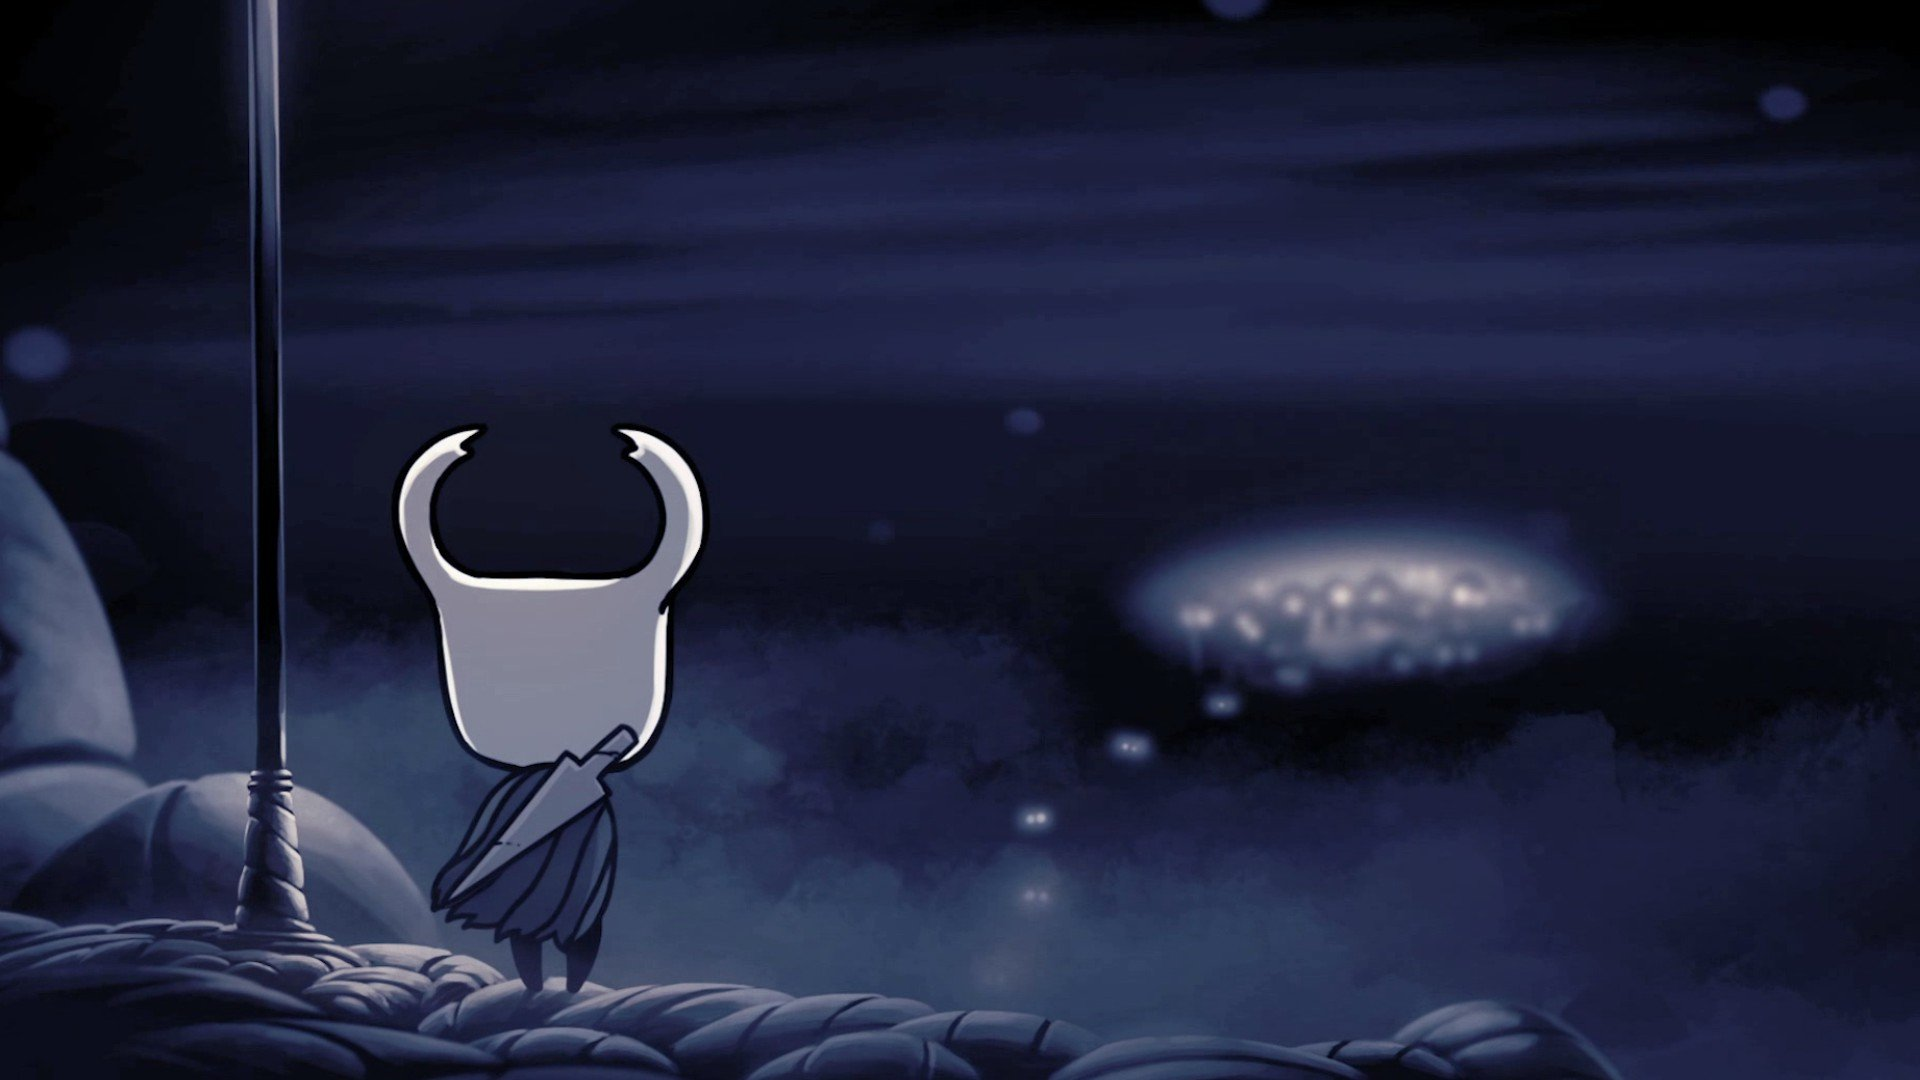 Modojo | Interview - Team Cherry Discusses Hollow Knight's Nintendo Switch Release And Upcoming DLC